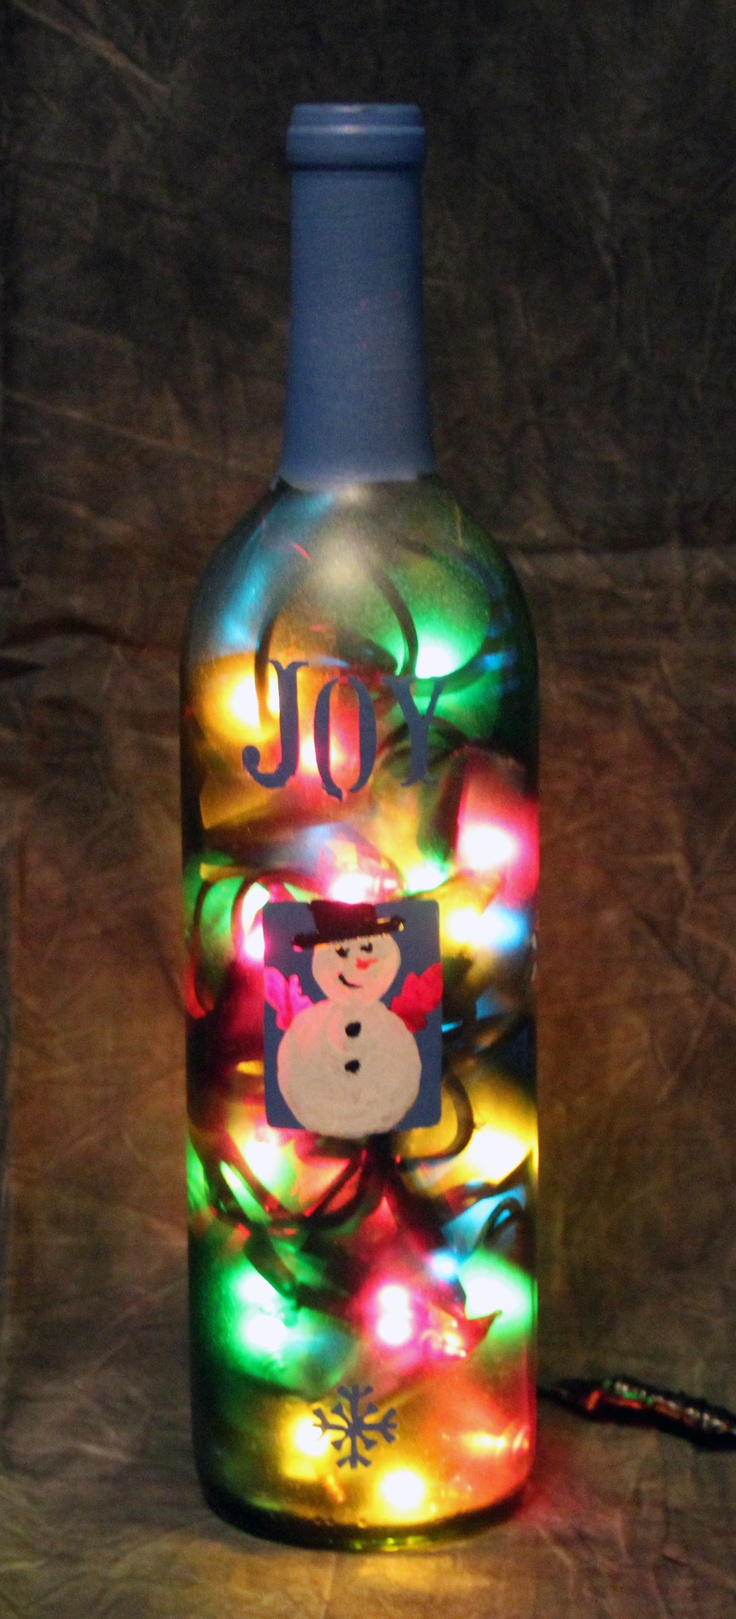 Small Wine Bottle hand painted with Snowman